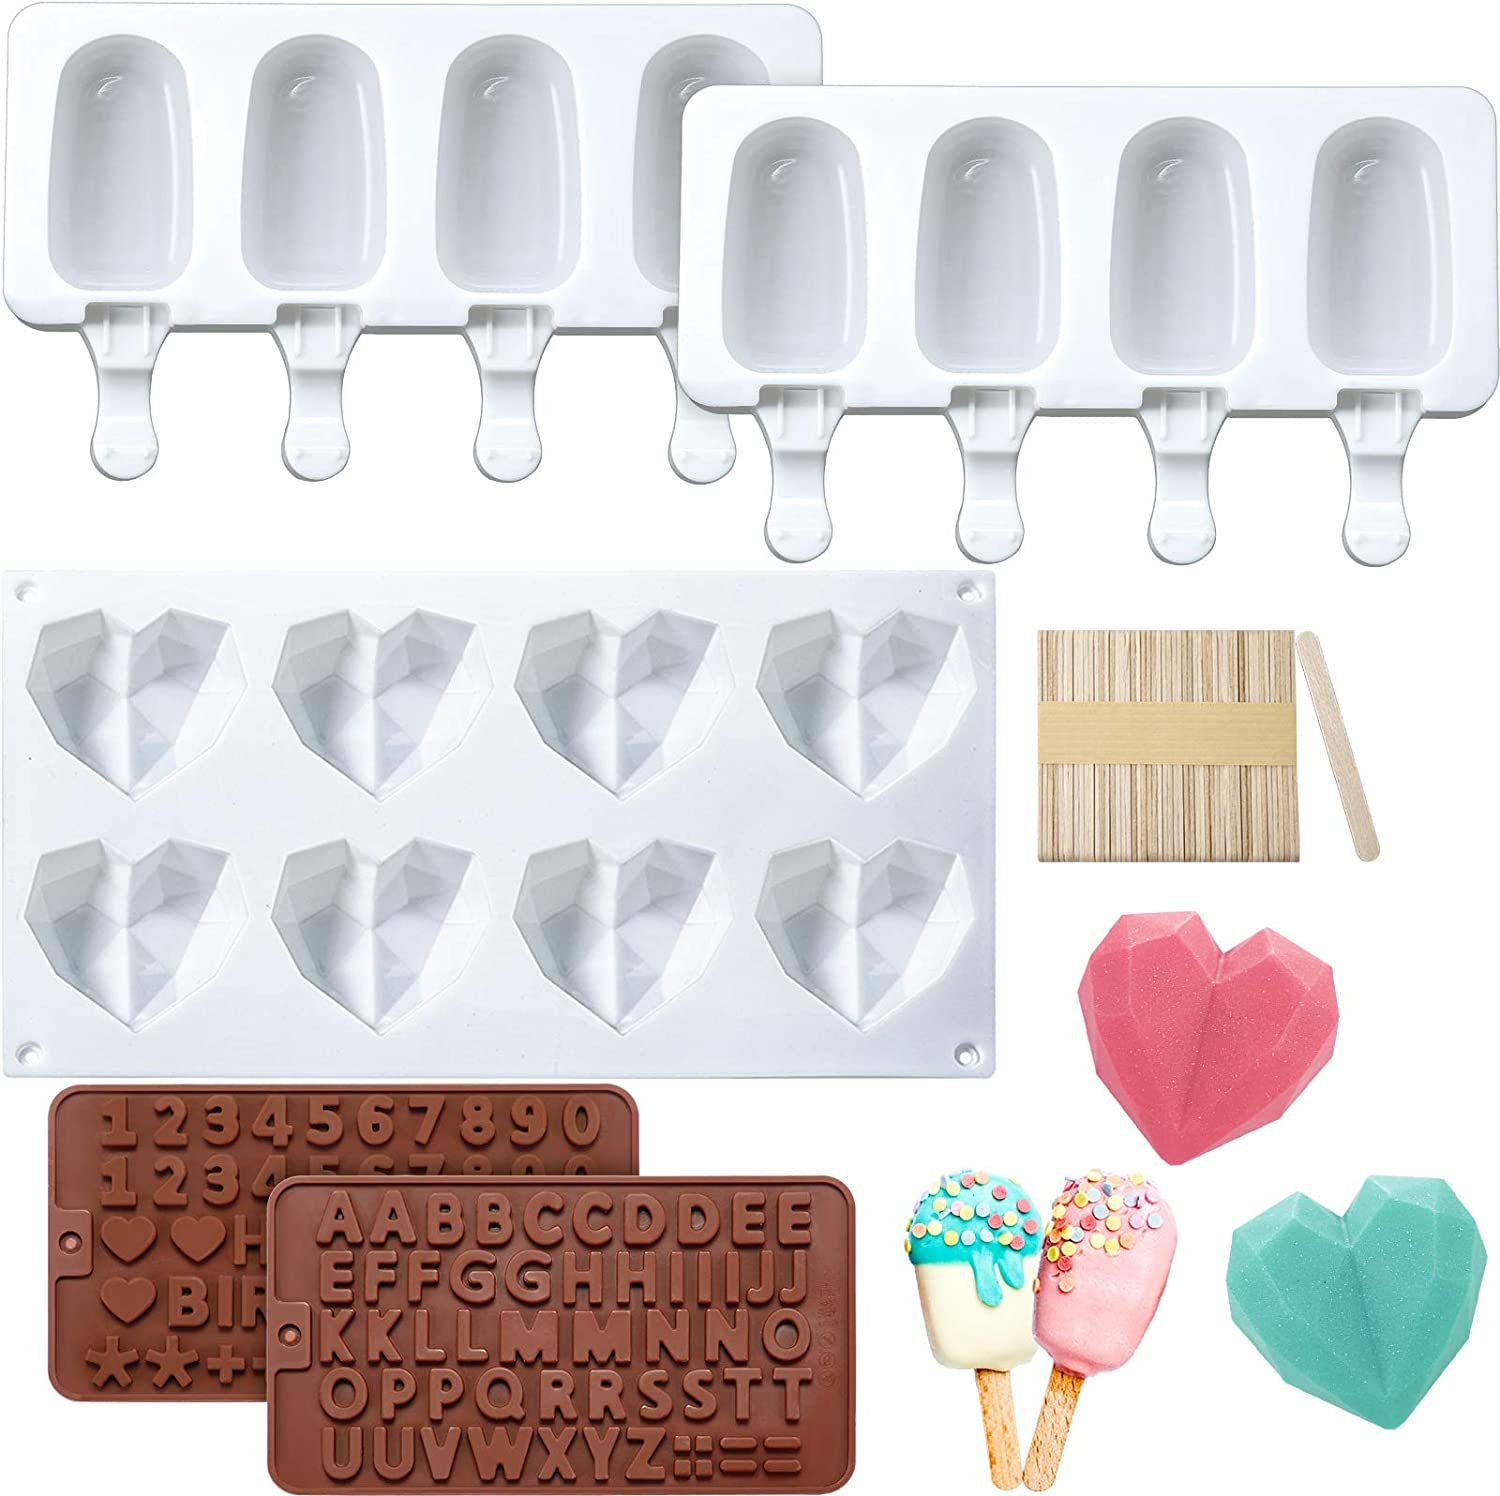 Silicone Diamond Heart Mold 8 Cavities Heart Shaped Cake Mold 2 Pieces Silicone Popsicle Molds 4 Cavities Ice Pop Molds with 50 Pieces Wooden Sticks, 2 Pieces Letter Number Chocolate Molds for Baking